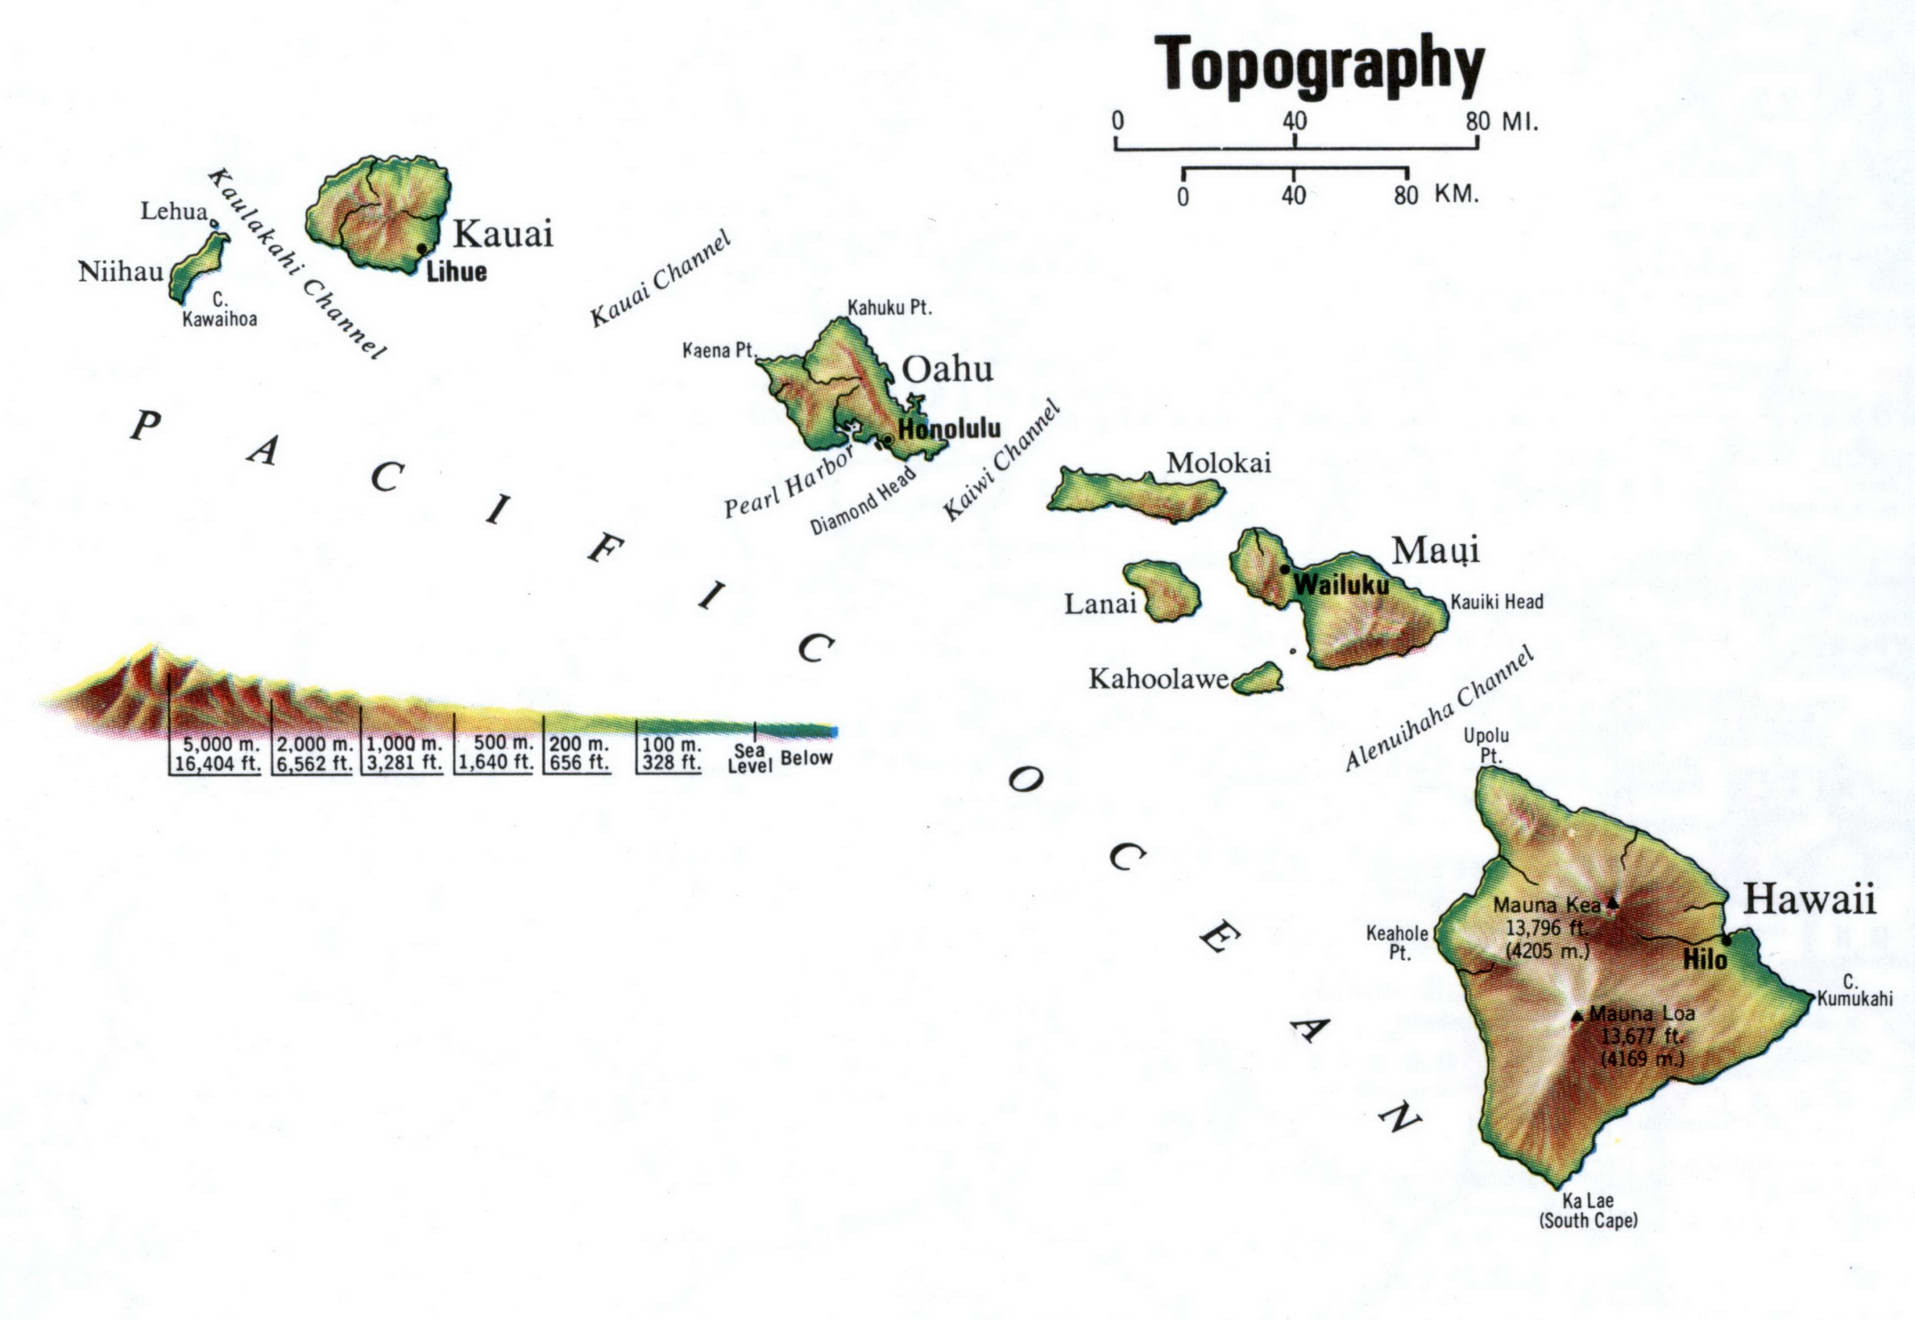 Topographic map Hawaii